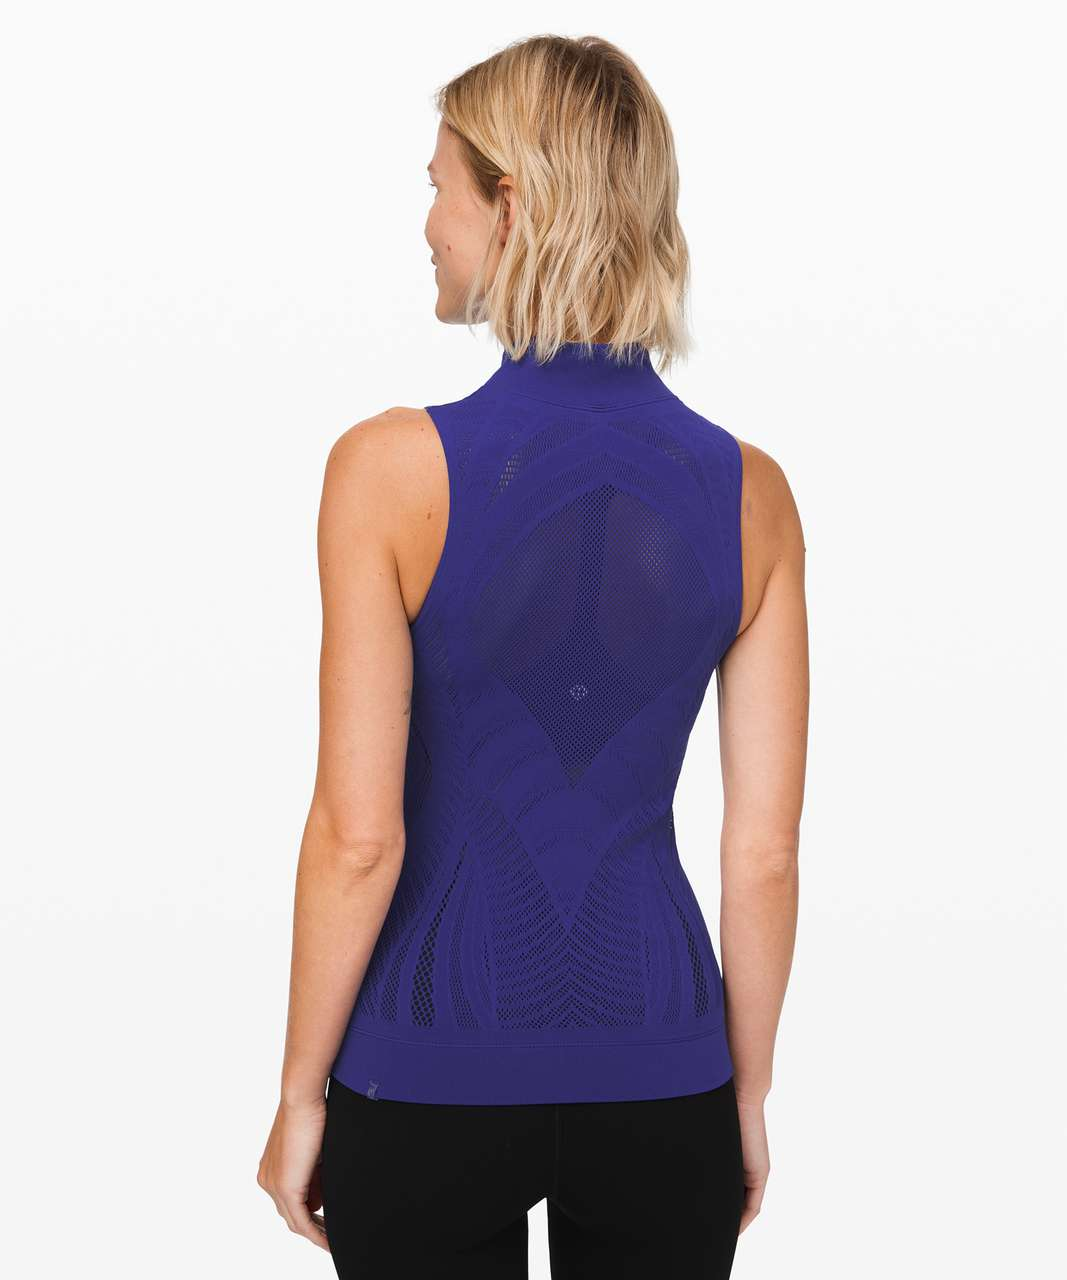 Lululemon Reveal Mock Neck Tank *Aurora - Larkspur